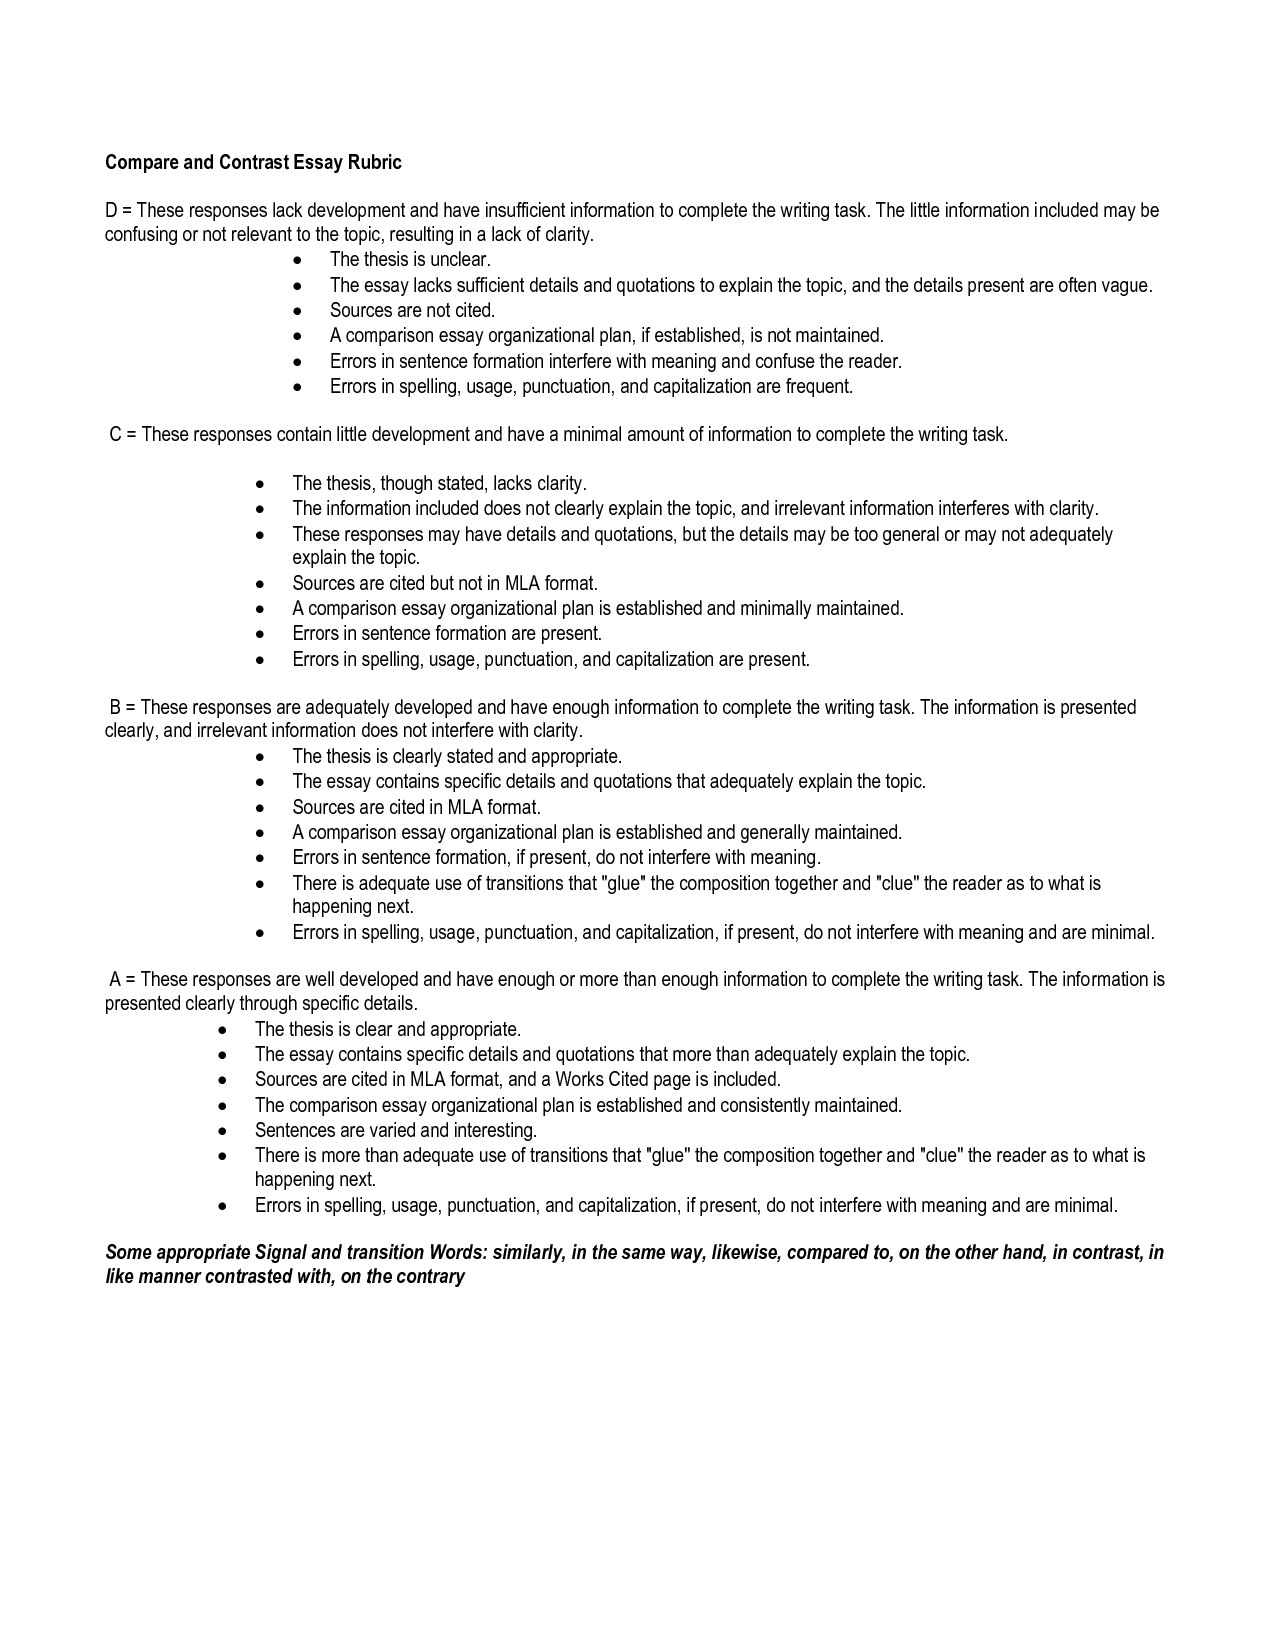 Compare And Contrast Essay Outline Template Write Pinterest - Compare And Contrast Essay Example College